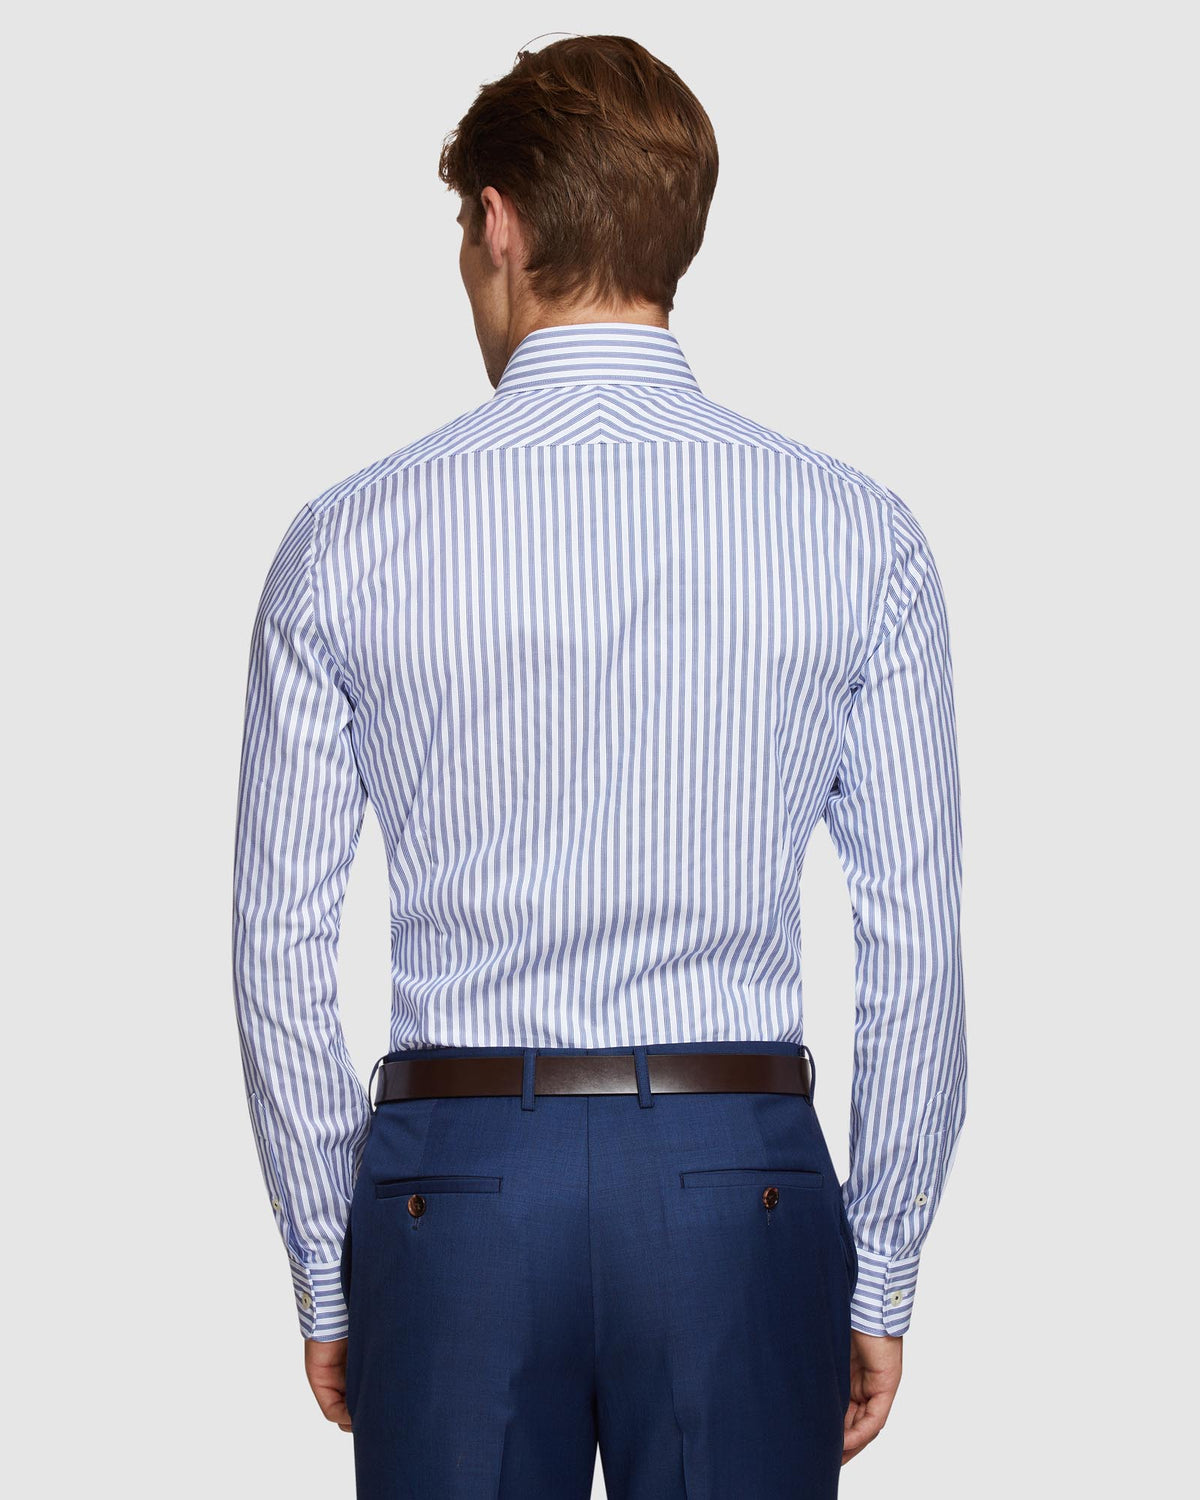 BECKTON STRIPED SHIRT NAVY